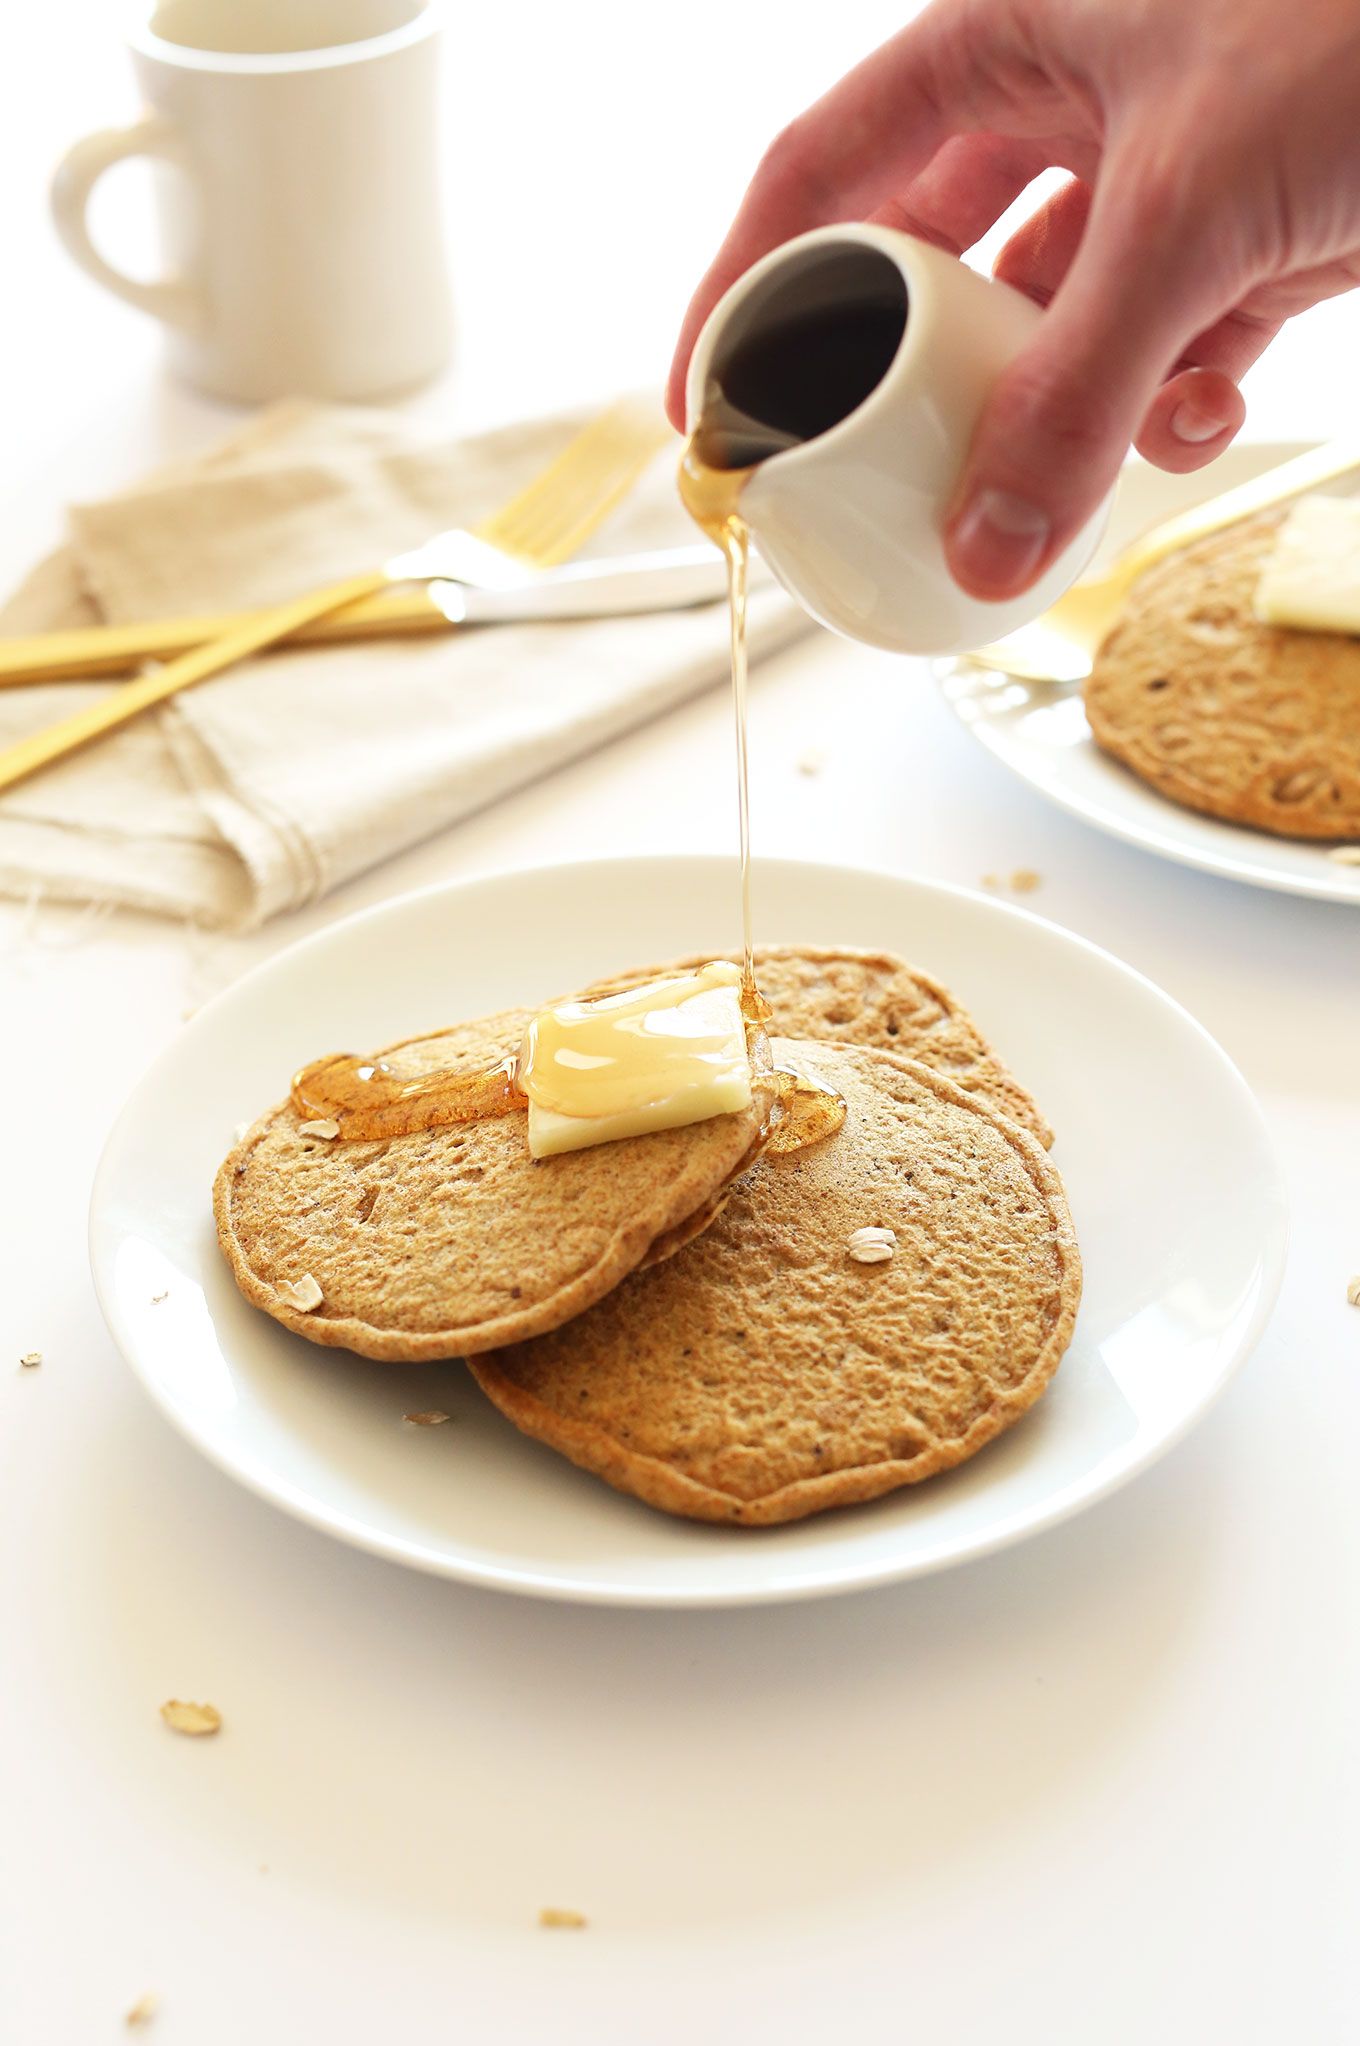 Pouring syrup onto a plate of simple Whole Grain, Healthy Vegan Pancakes